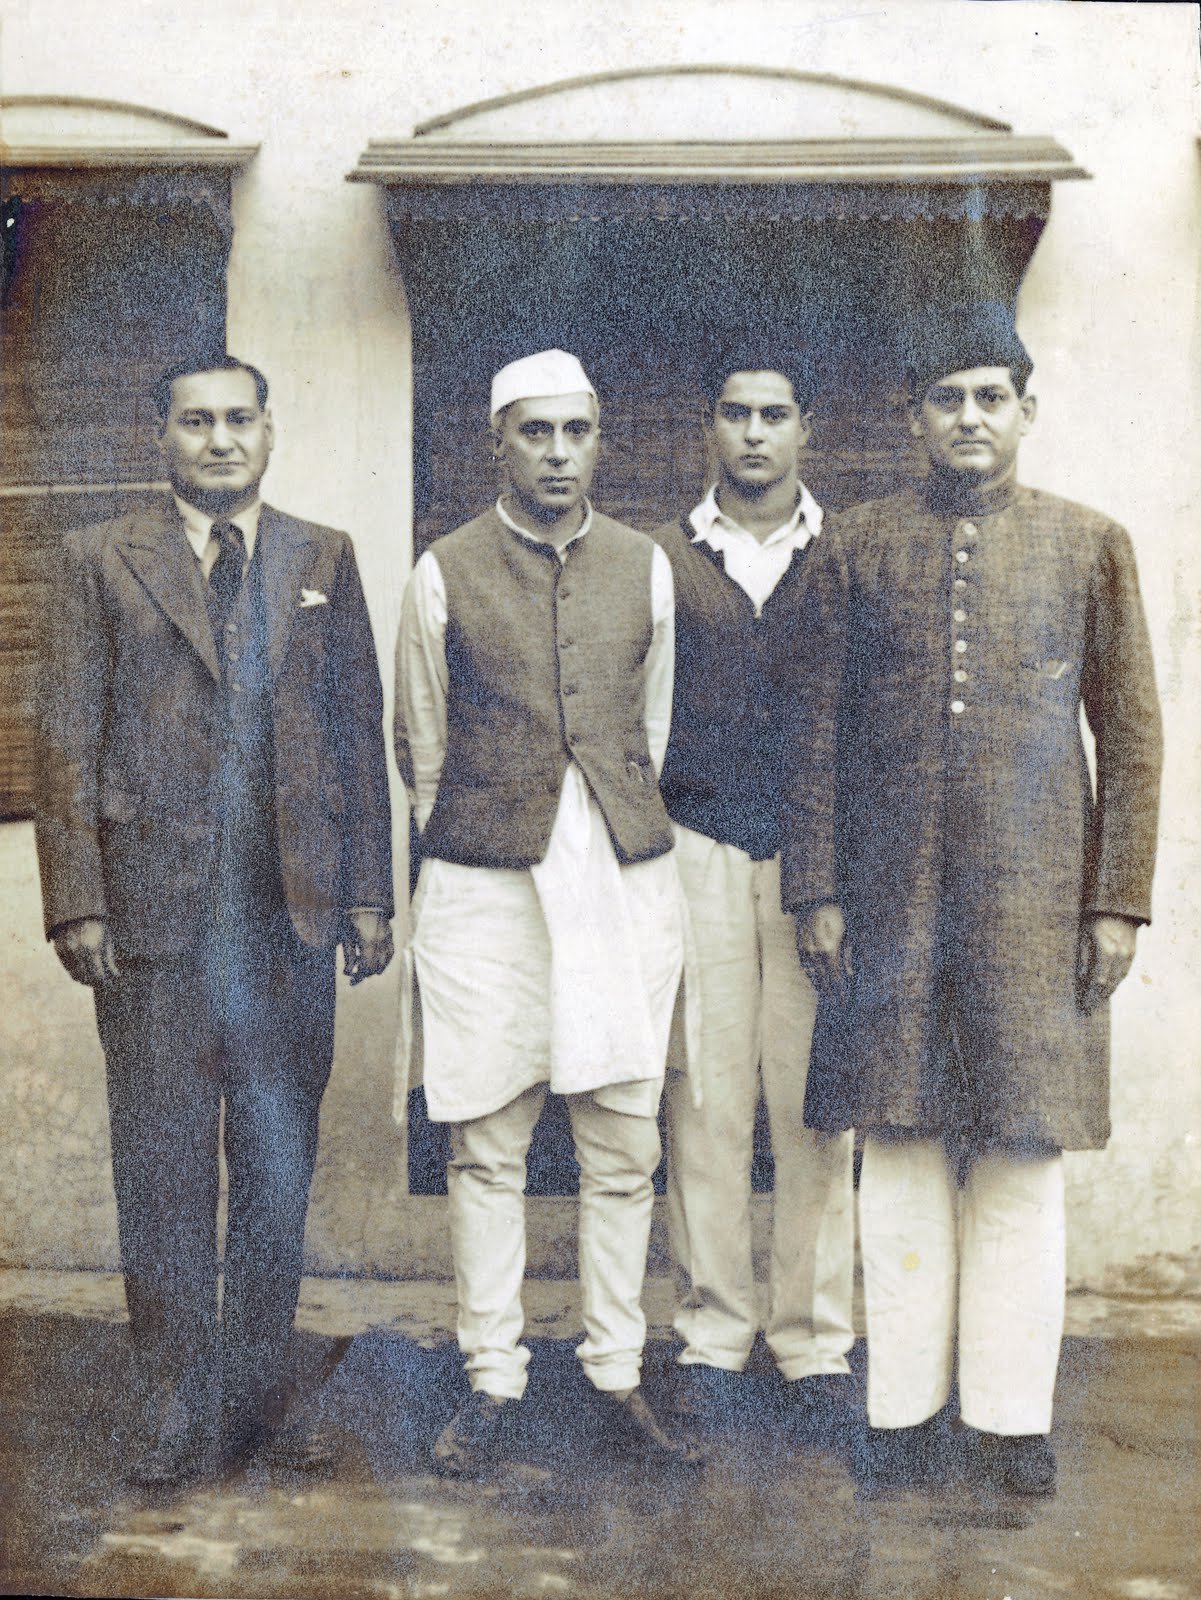 Mr. Feisal Ali (feisal.ali@gmail.com) contributed photograhs (sic) - Khwaja Mohammed Azam, a member of the Indian National Congress based in Ludhiana; friend of Jawaharlal Nehru; picture taken in 1947 when Nehru visited Ludhiana and stayed at my Khwaja Mohammed Azam's residence. (Pic courtesy - oldindianphotos.blogspot.com.). Click for larger picture.